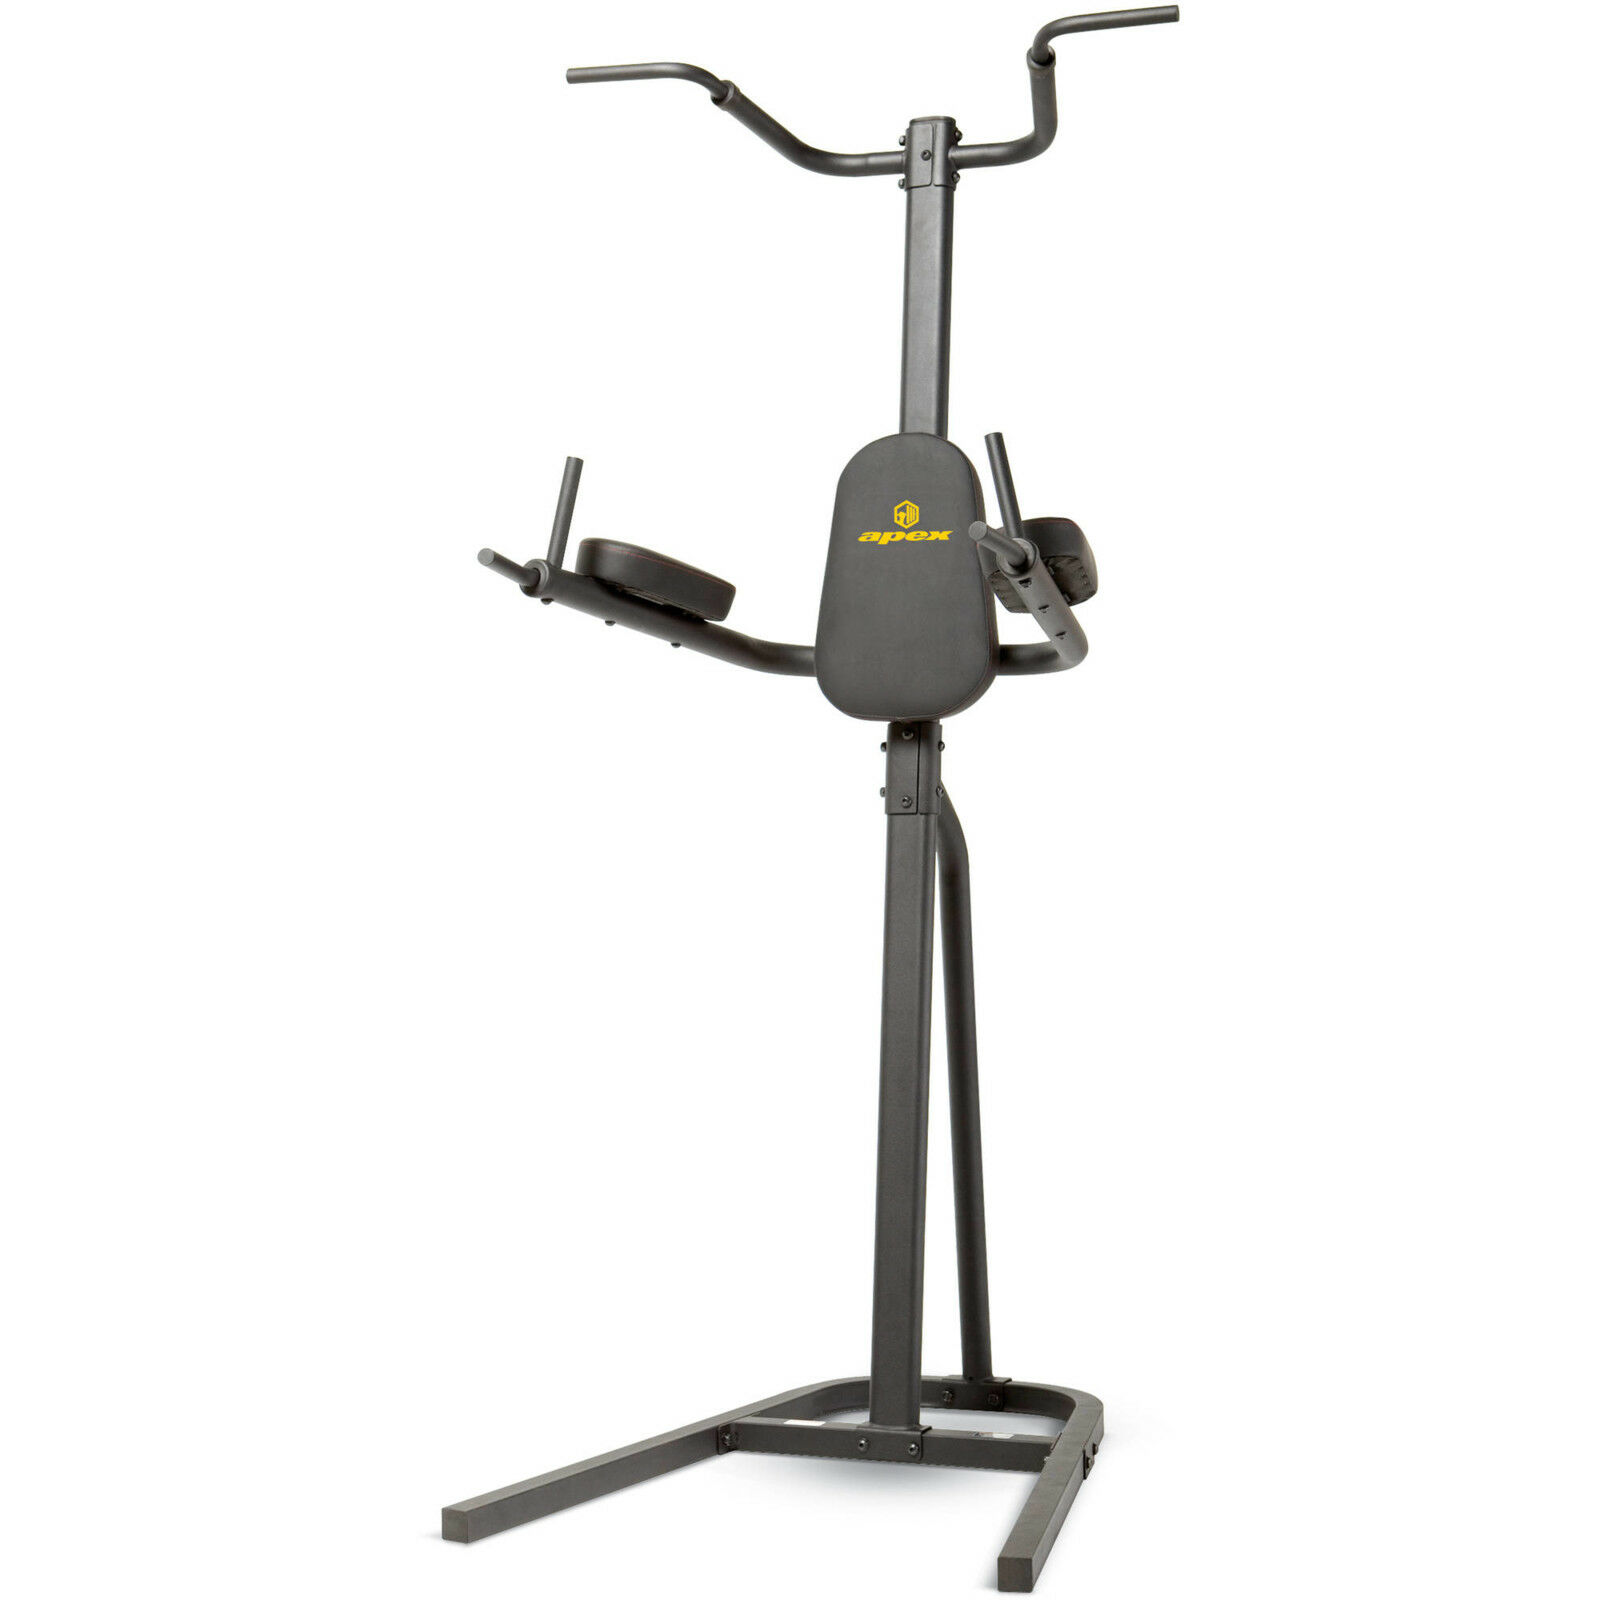 Apex Power Tower Compact Heavy Duty Home  Gym Multiple Zone Exercise Station NEW  special offer